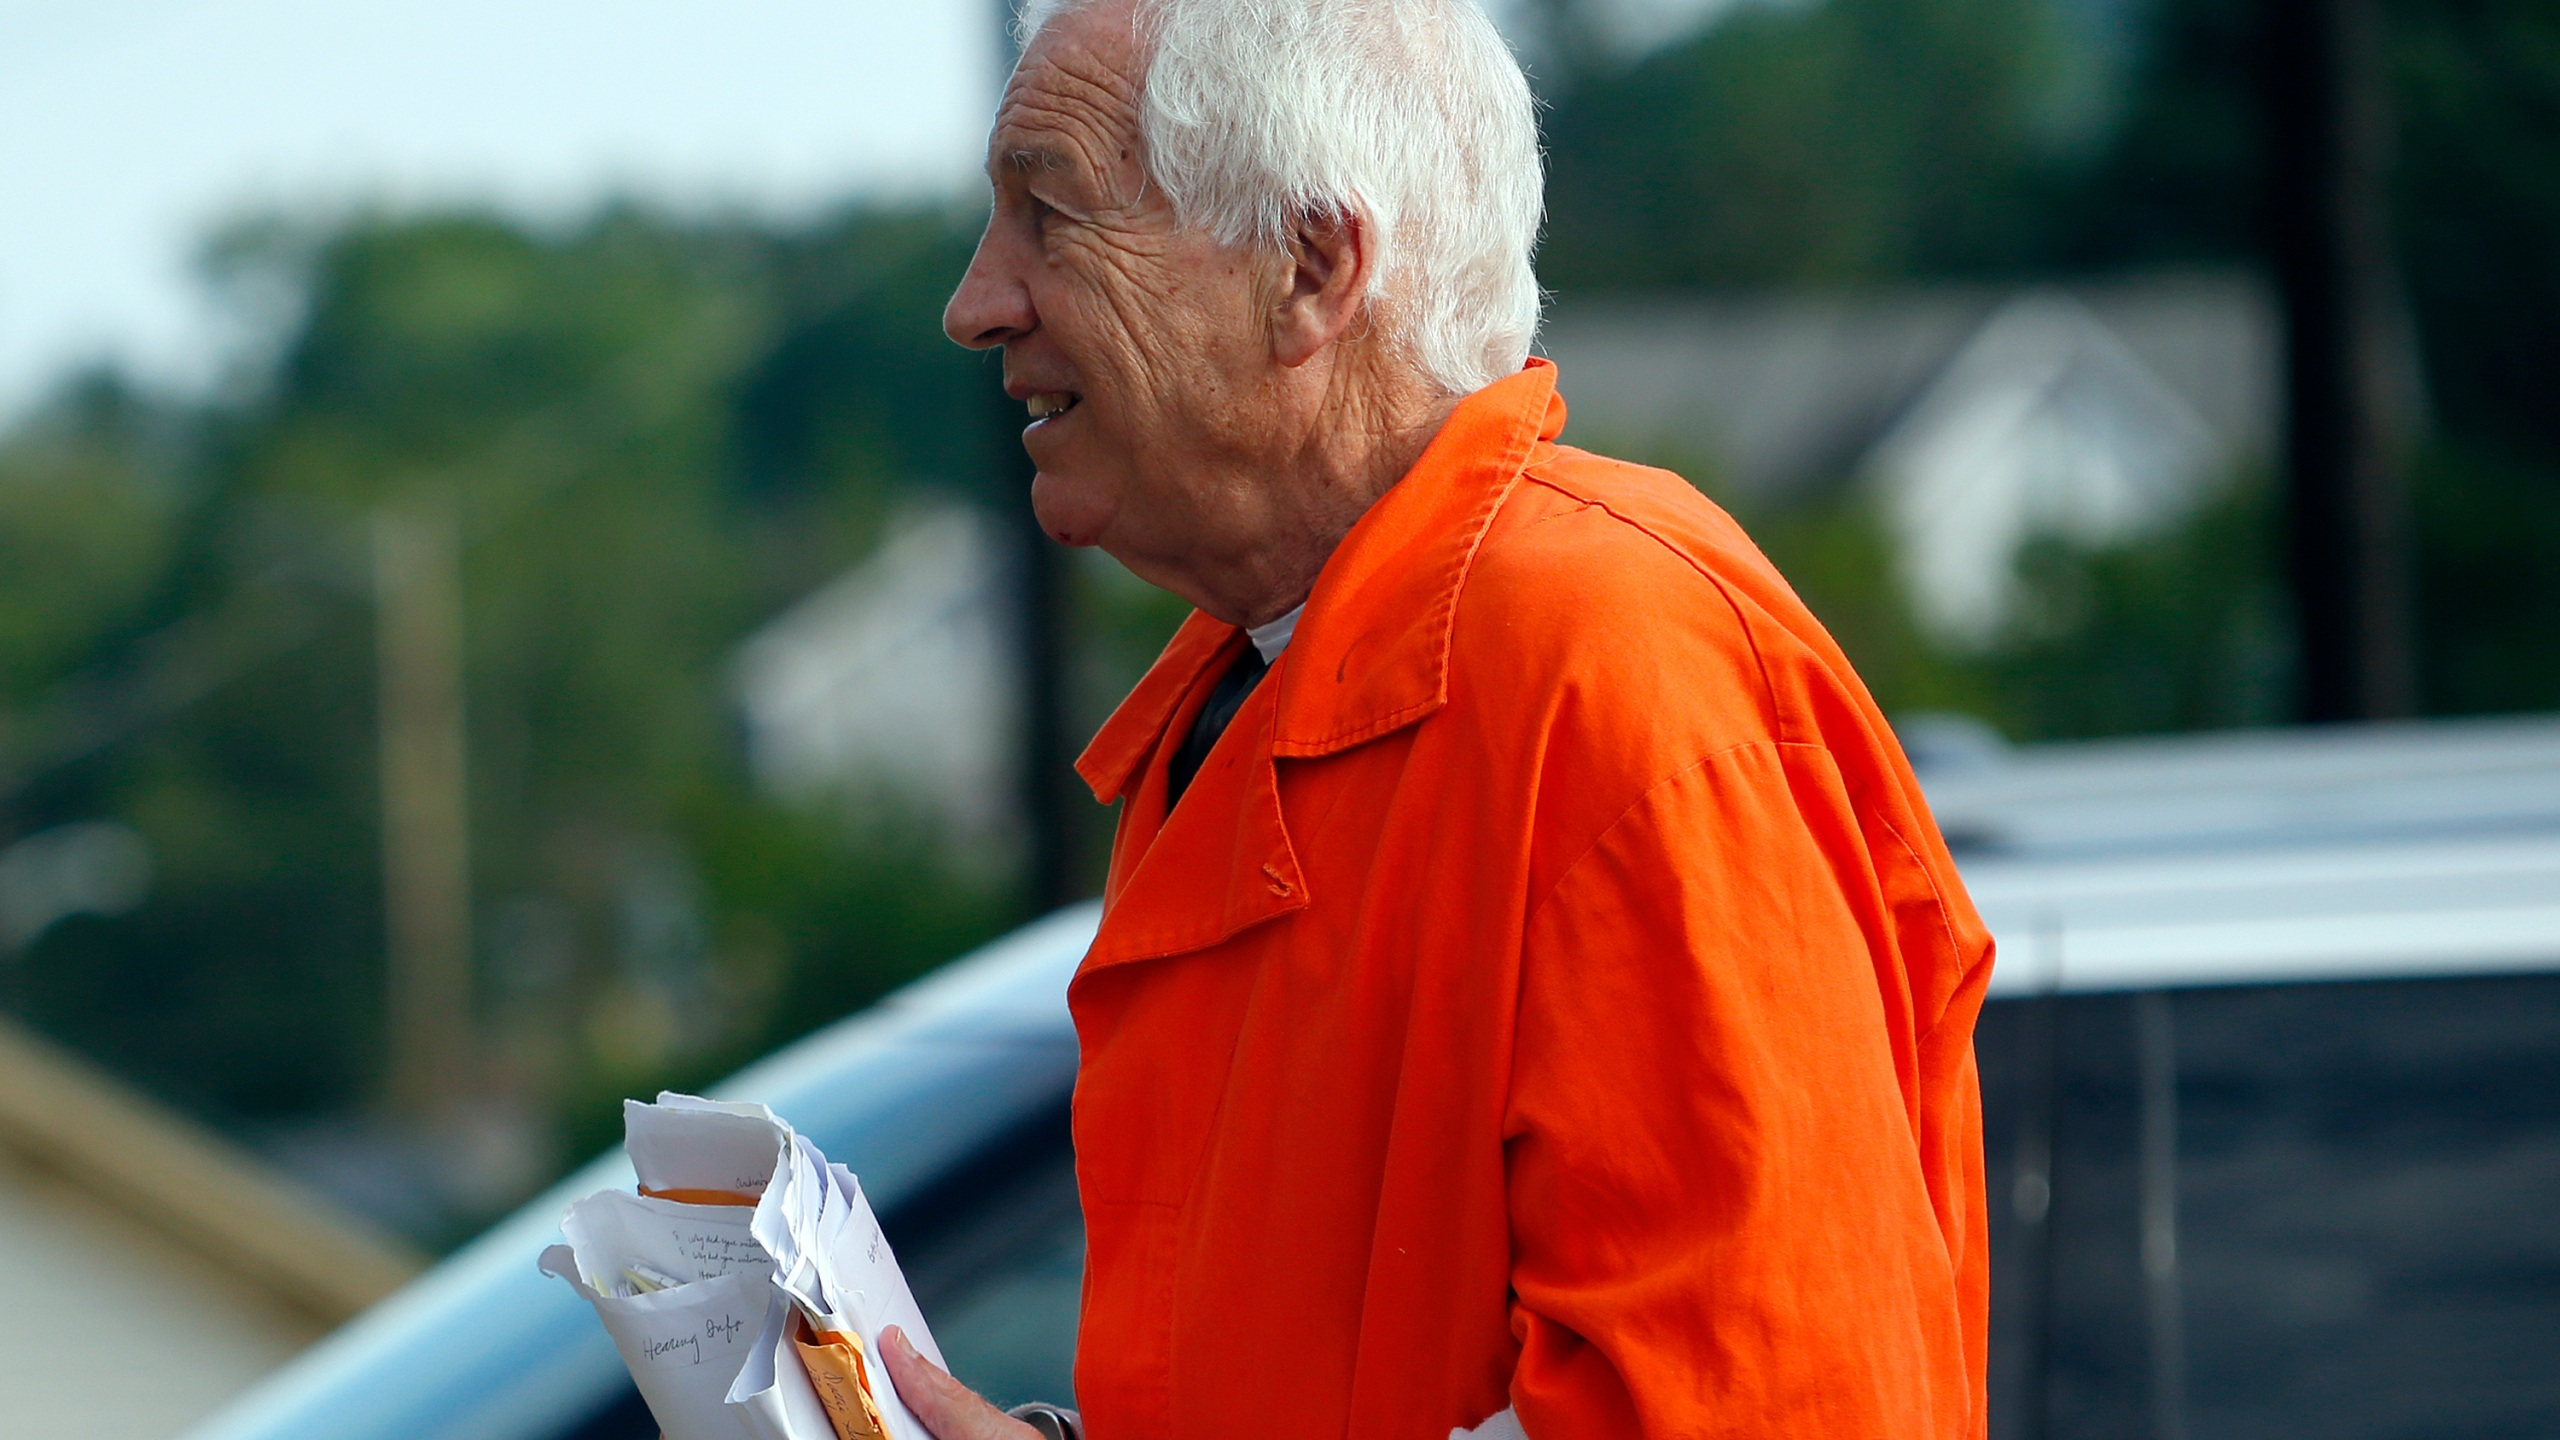 Former Penn State Assistant Coach Jerry Sandusky Appears In Court For Appeals Hearing On His Child Sex Abuse Conviction.jpg